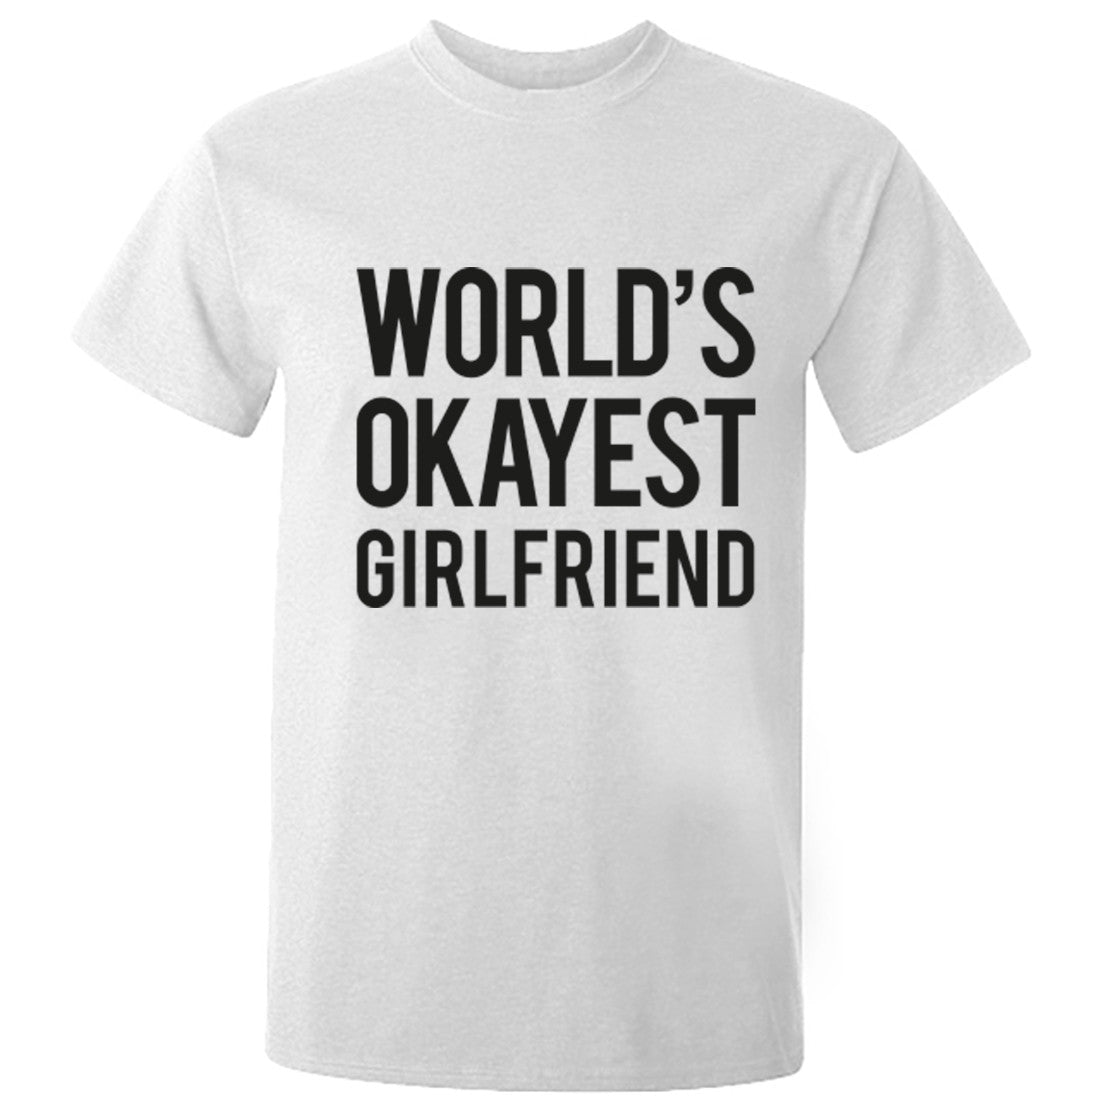 Worlds Okayest Girlfriend Unisex Fit T-Shirt K0482